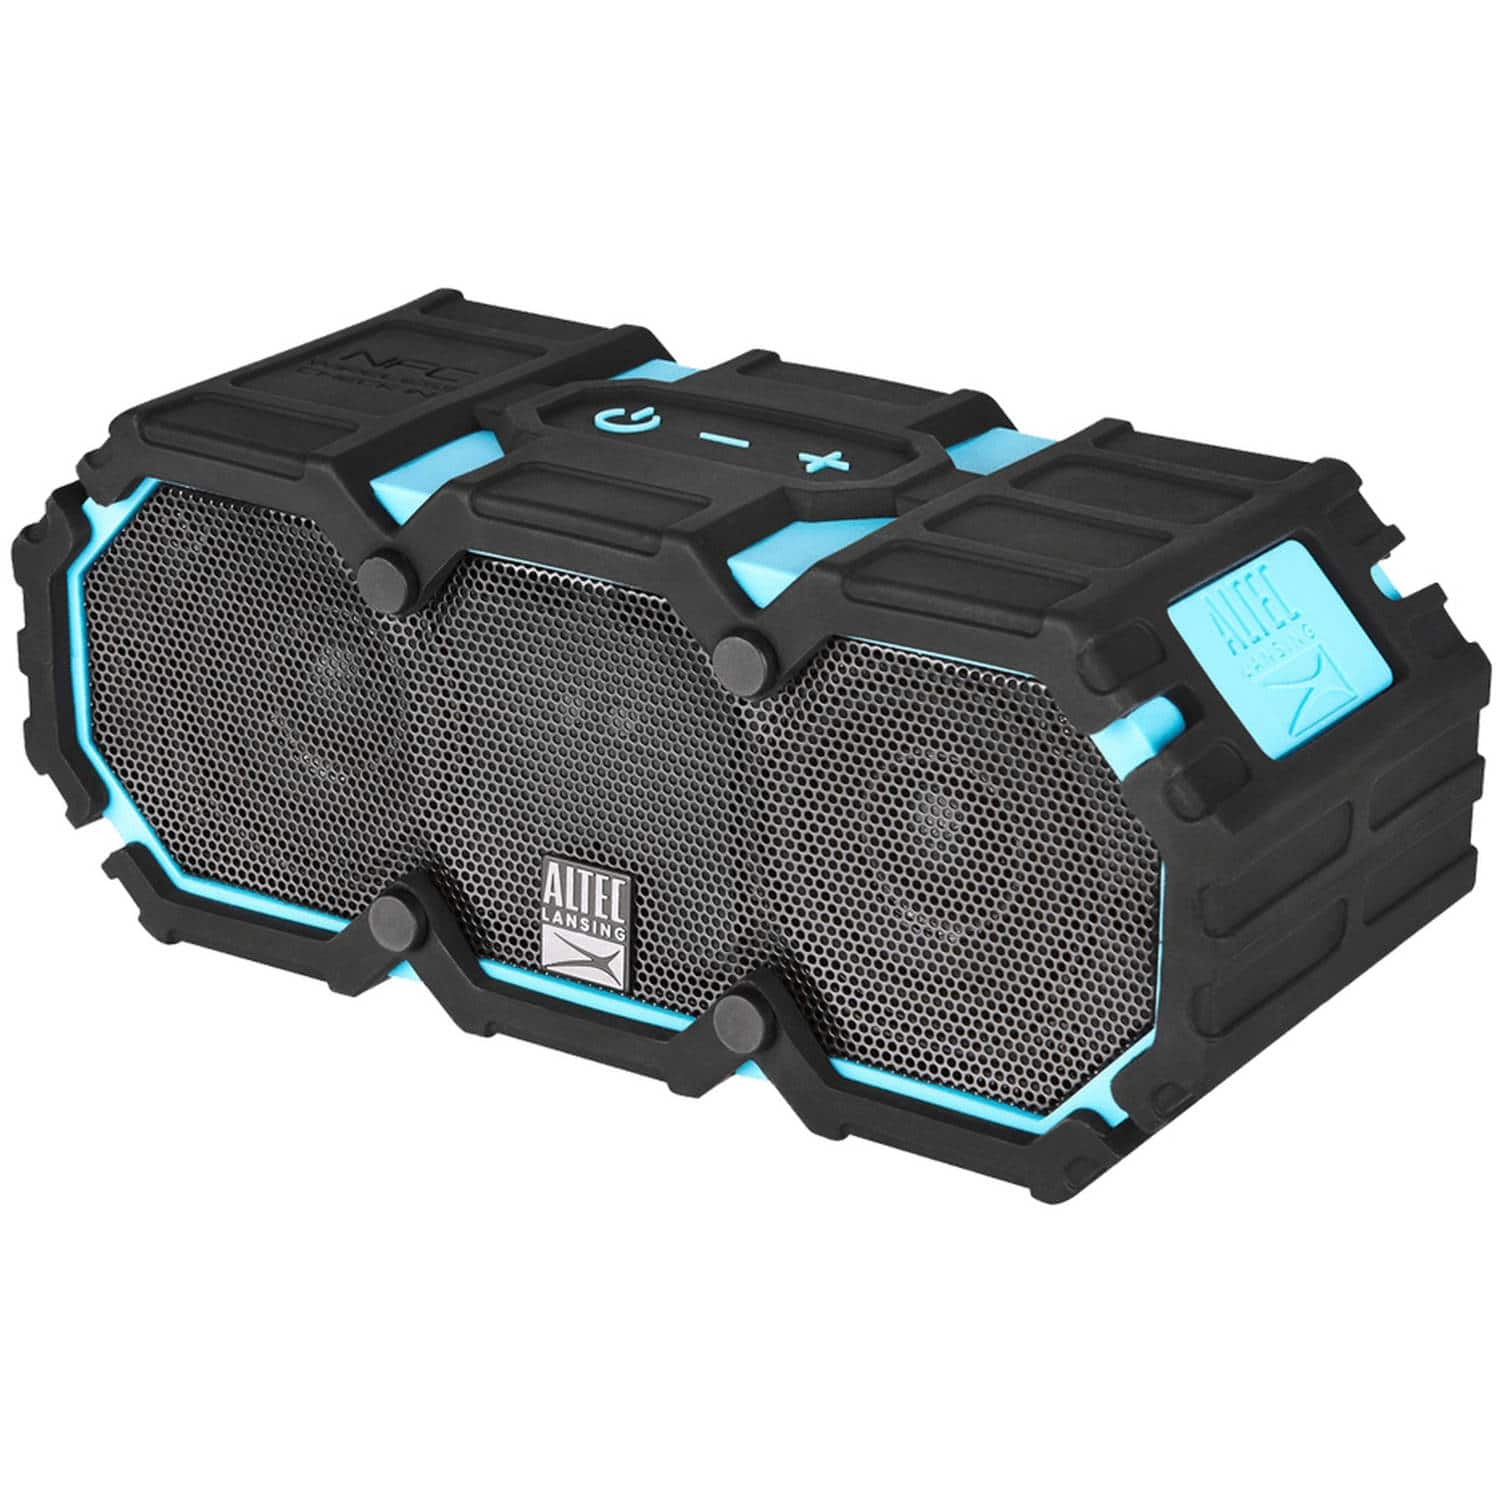 Altec Lansing iMW577 Lifejacket 2 Bluetooth Speaker, Blue $30 Walmart B&M ymmv